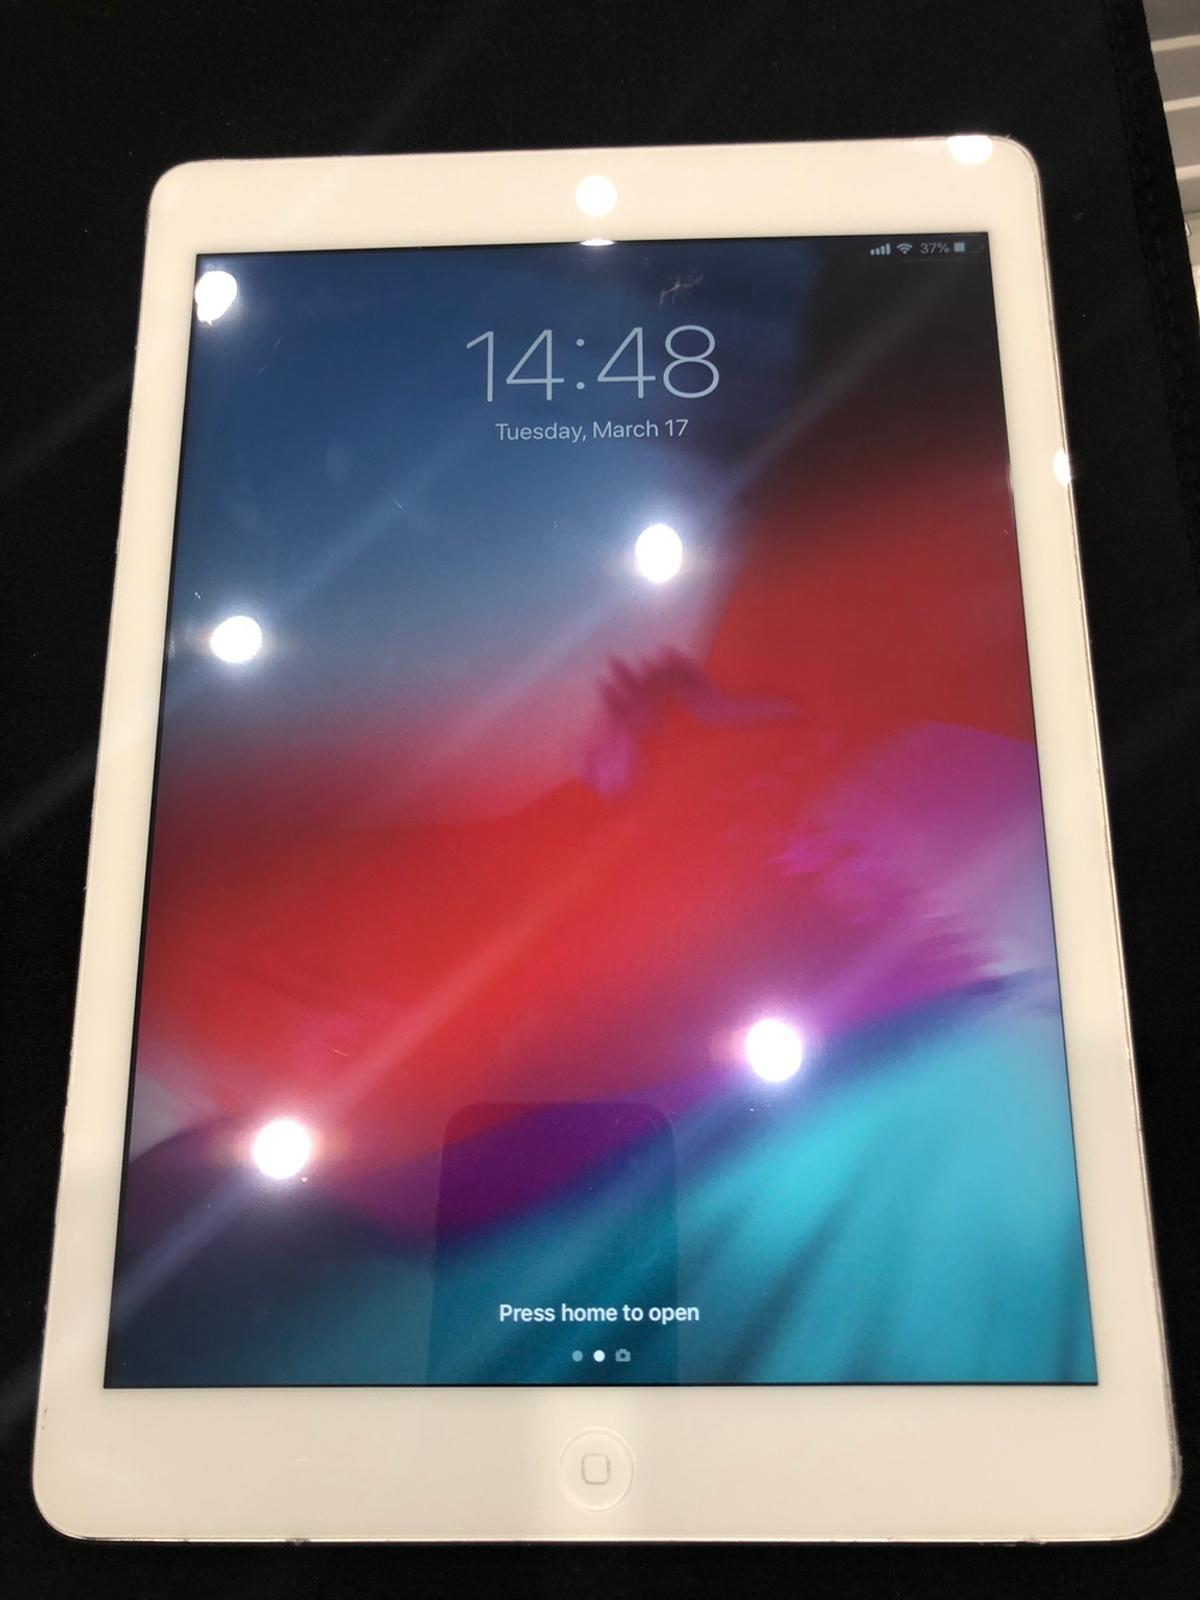 Hi here I have for sale iPad Air 1st generation 32GB WiFi + unlocked new CONDITION well look after fully working oder grate shape see pitchers for more details any question fell free to contact me thanks for looking.  NO POSTAGE AVAILABLE plz don't ask PayPal payment or to post to anywhere this item is only for collections.